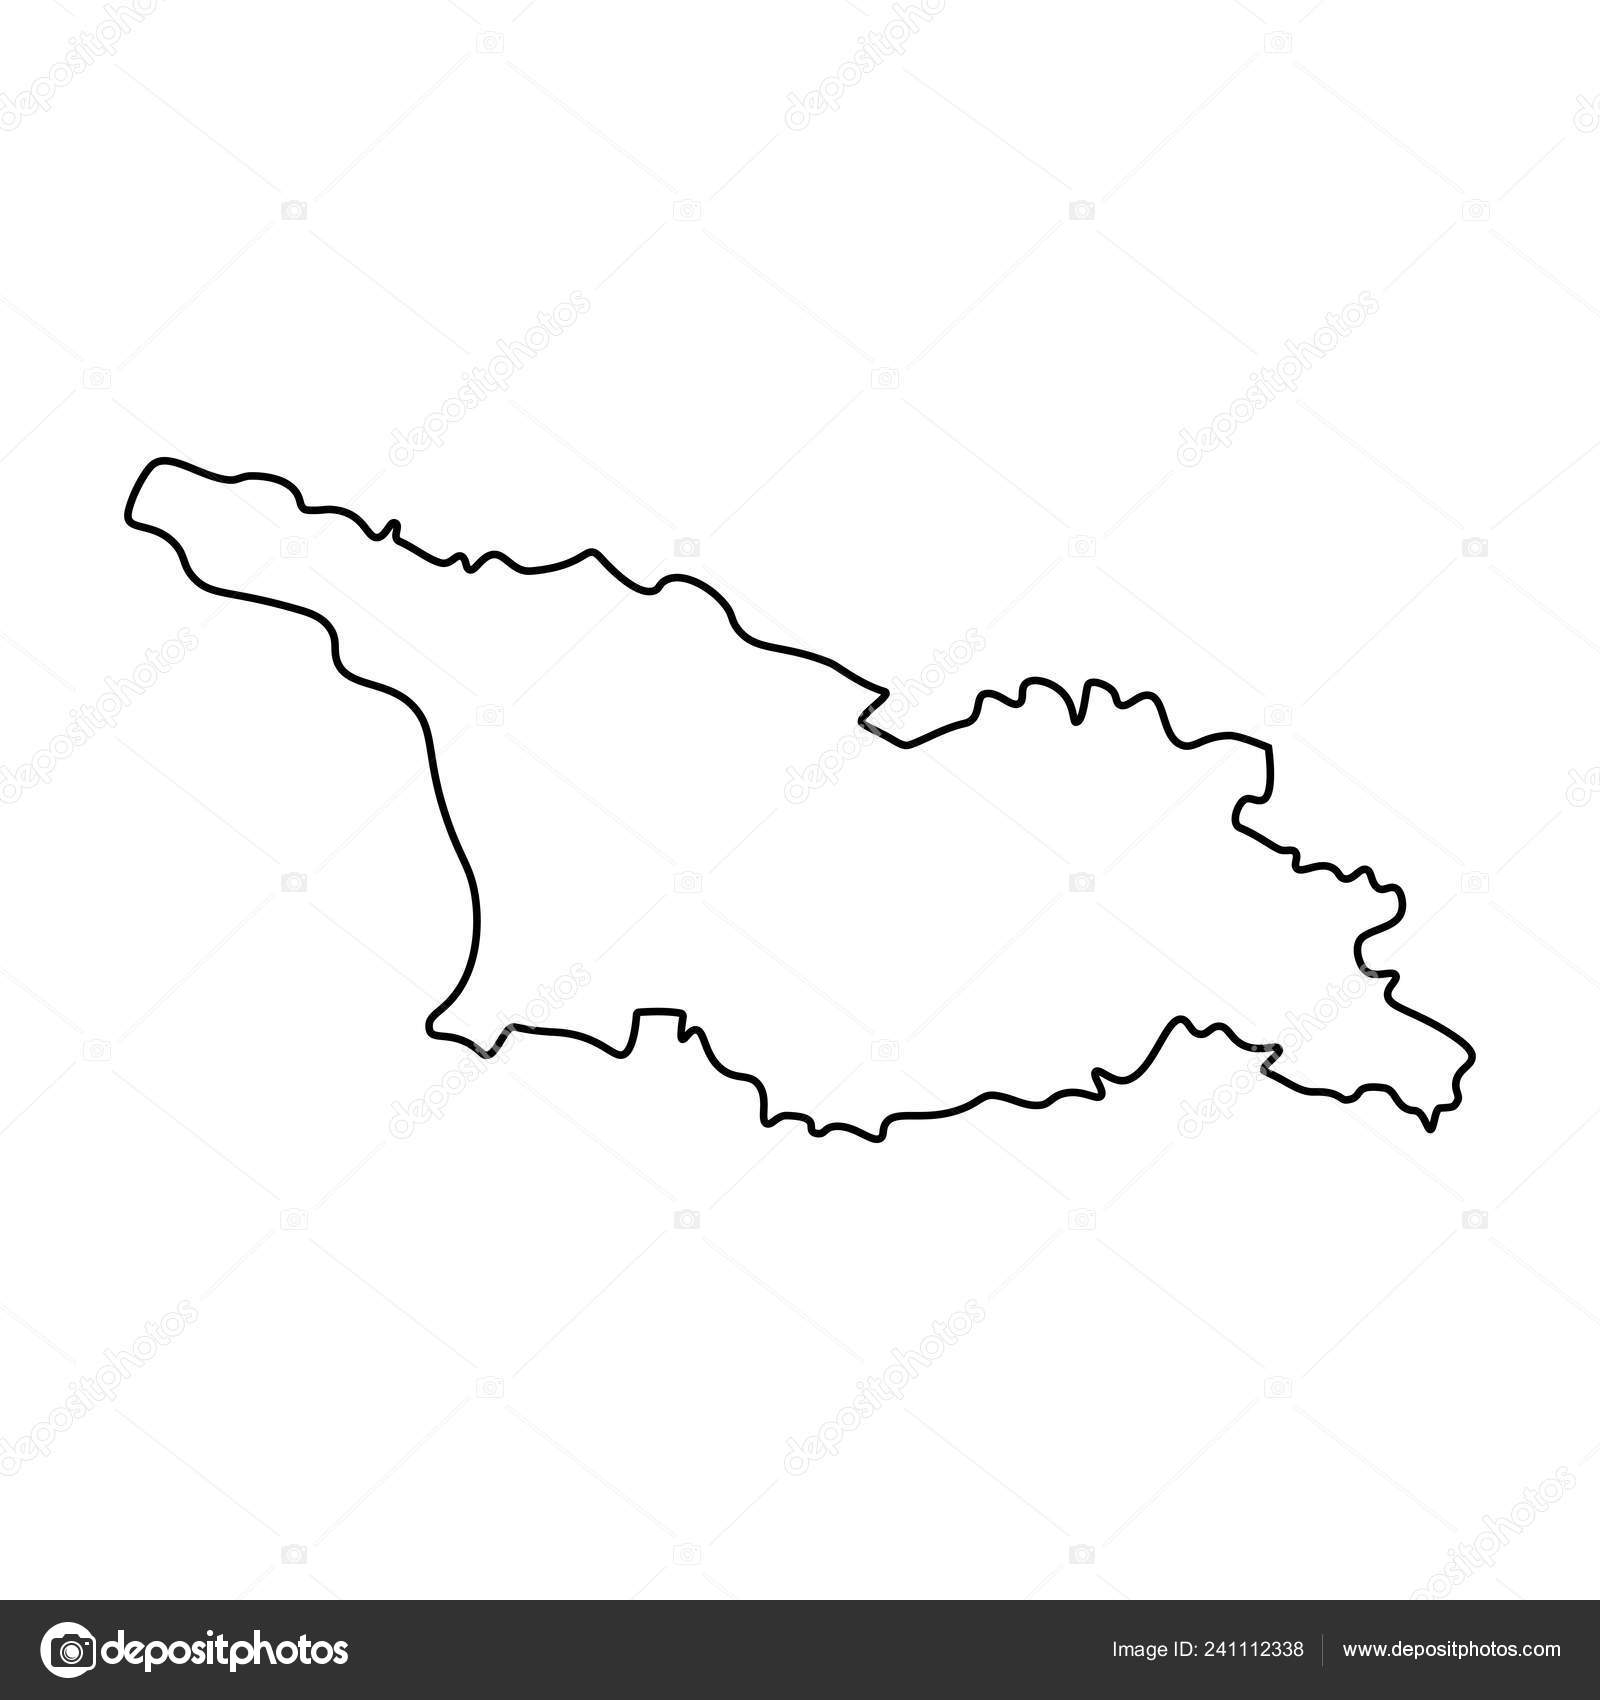 Outline Of Georgia Map.Map Georgia Outline Silhouette Georgia Map Vector Illustration